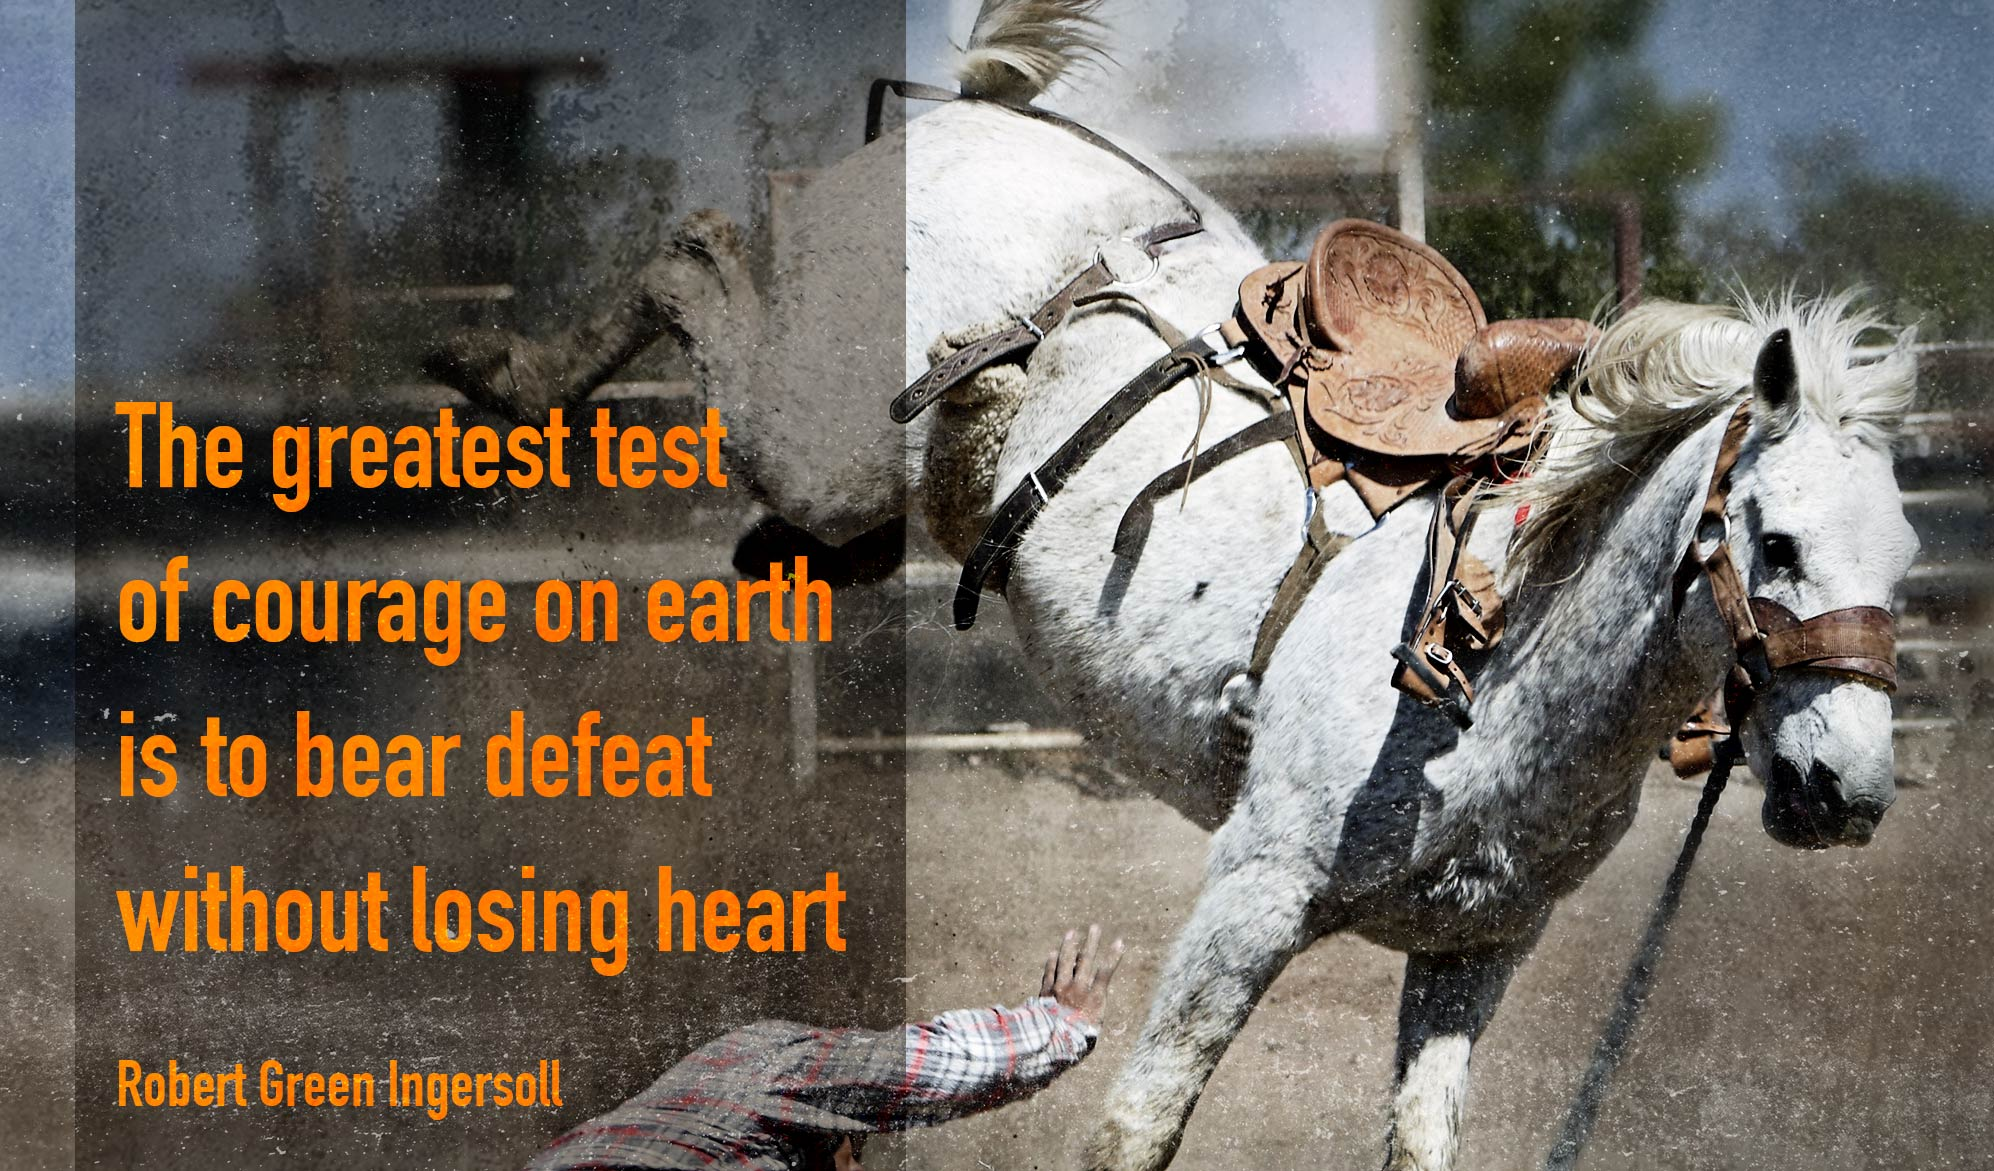 daily inspirational quoe image: a man being thrown off his horse